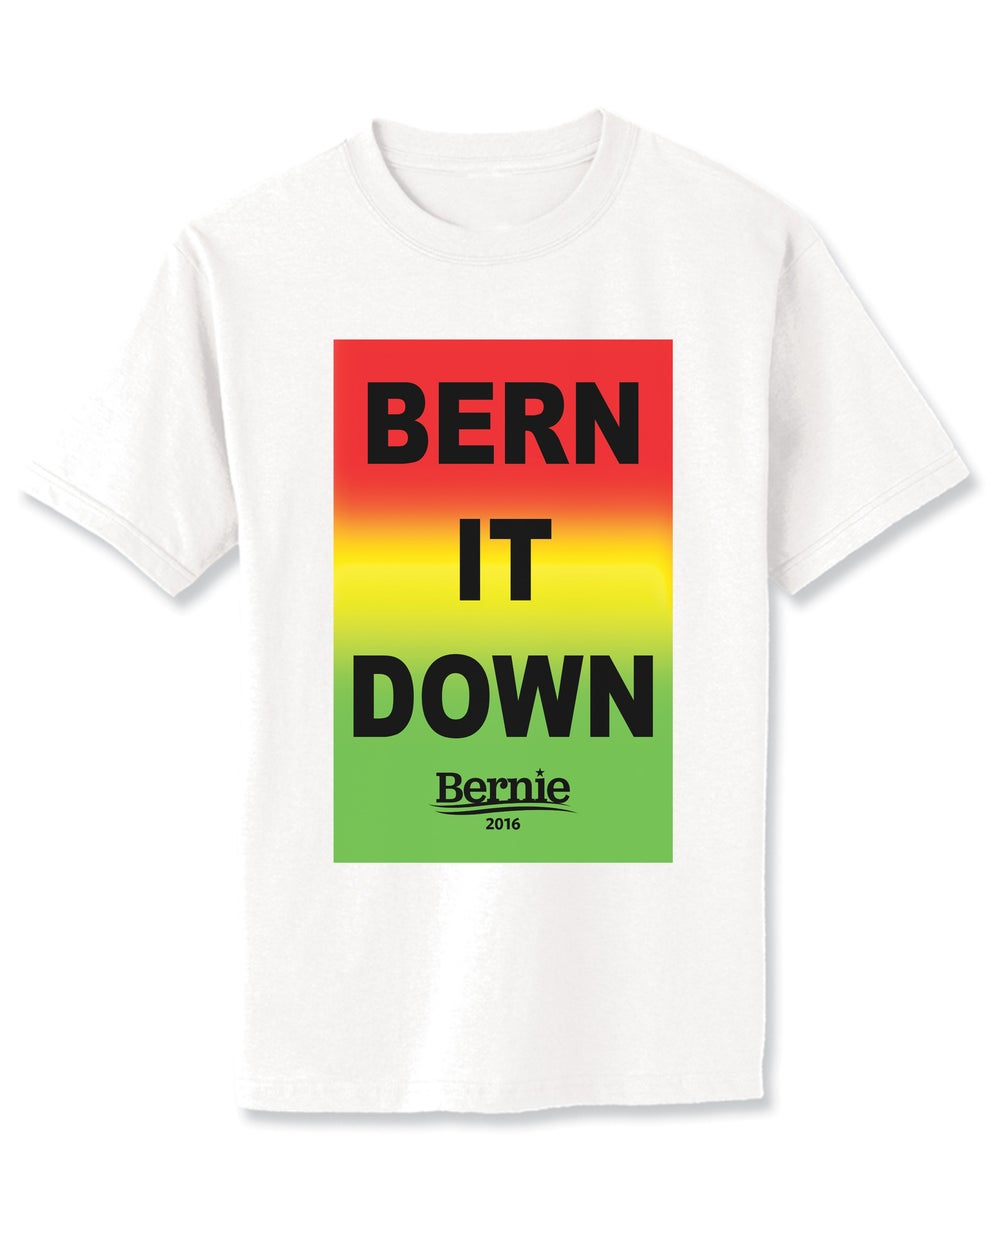 Image of BERN IT DOWN tee